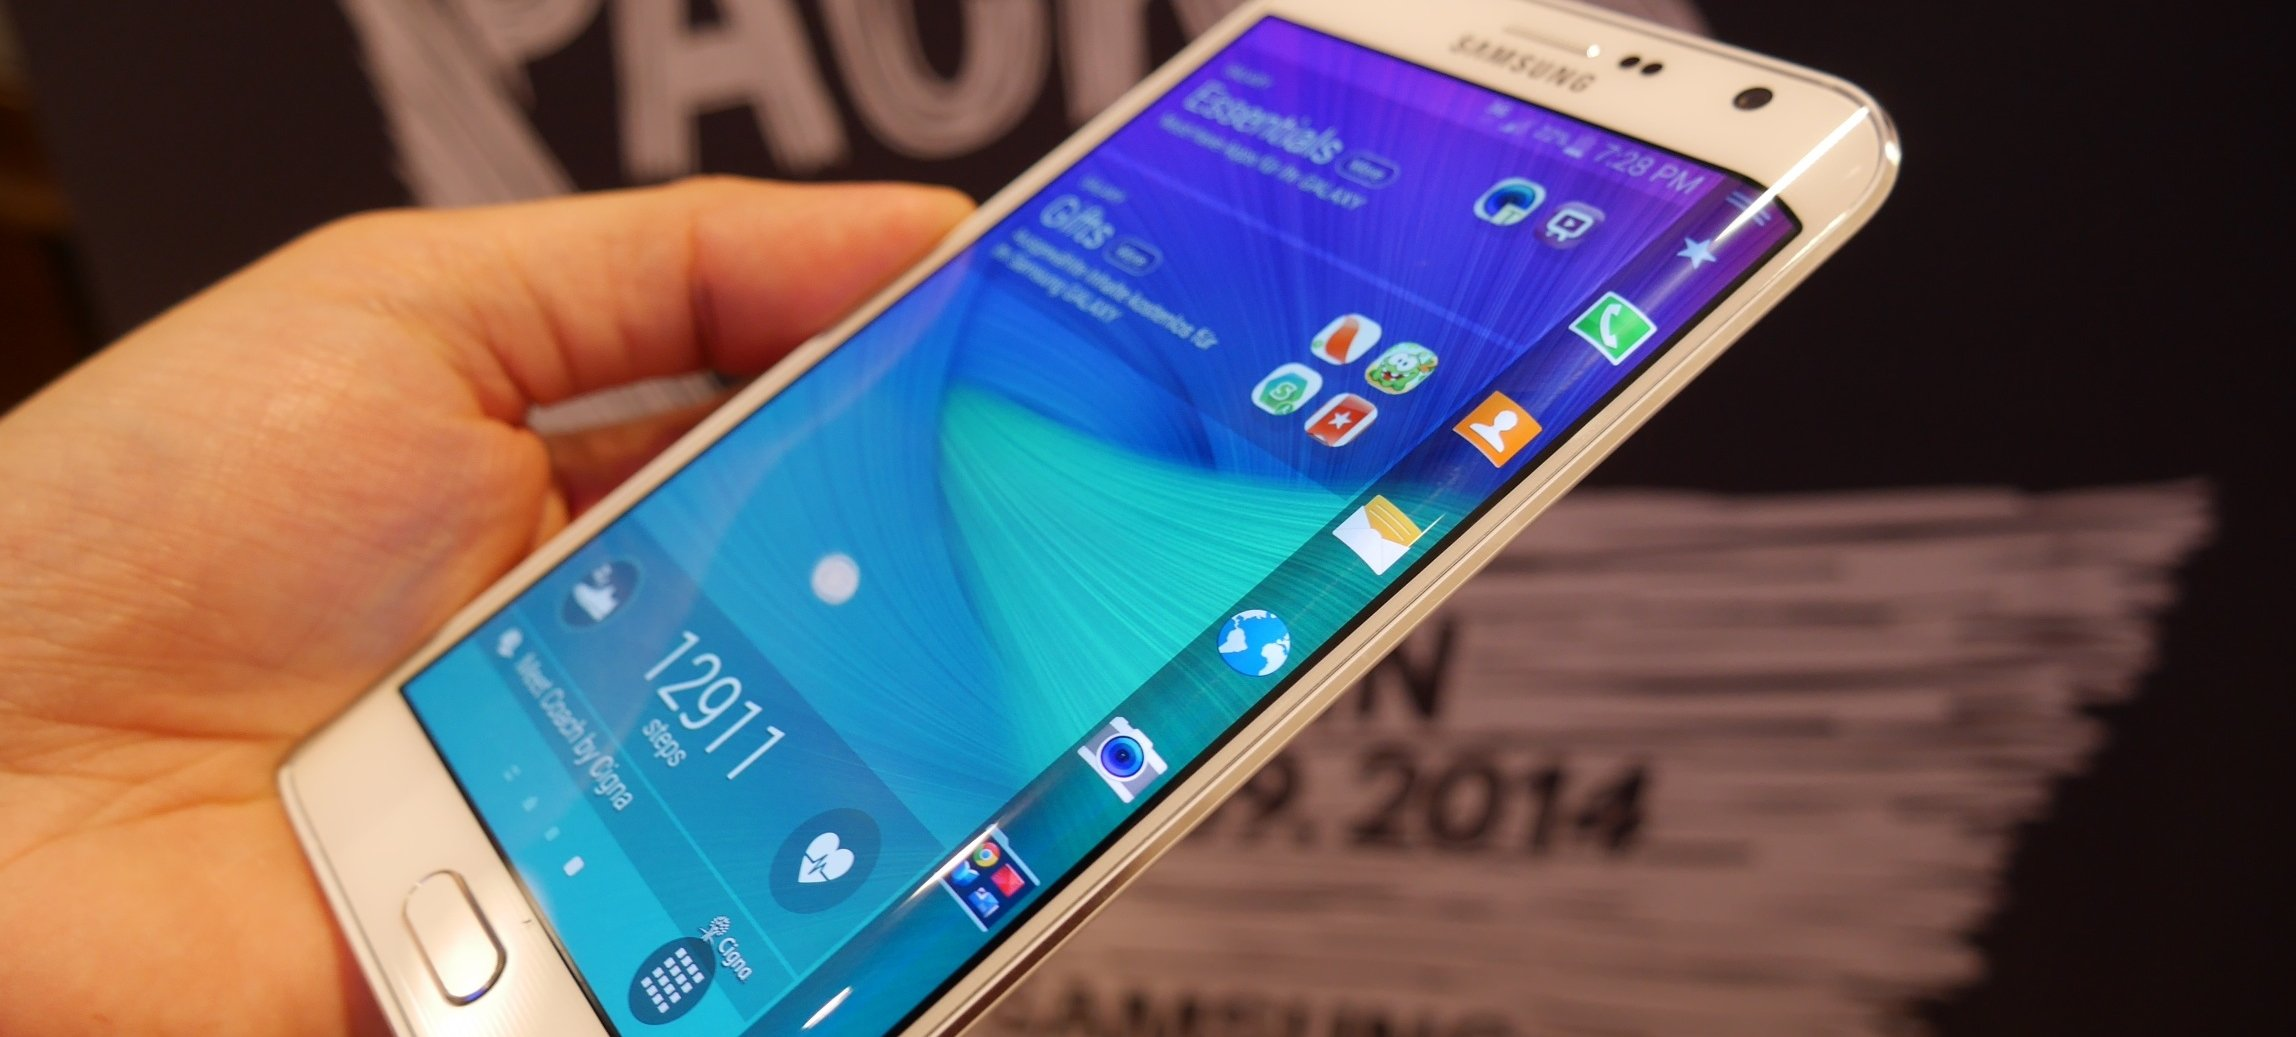 Phone Latest Samsung Android Phones the galaxy note 4 and xperia z3 have killed innovation expert samsung edge